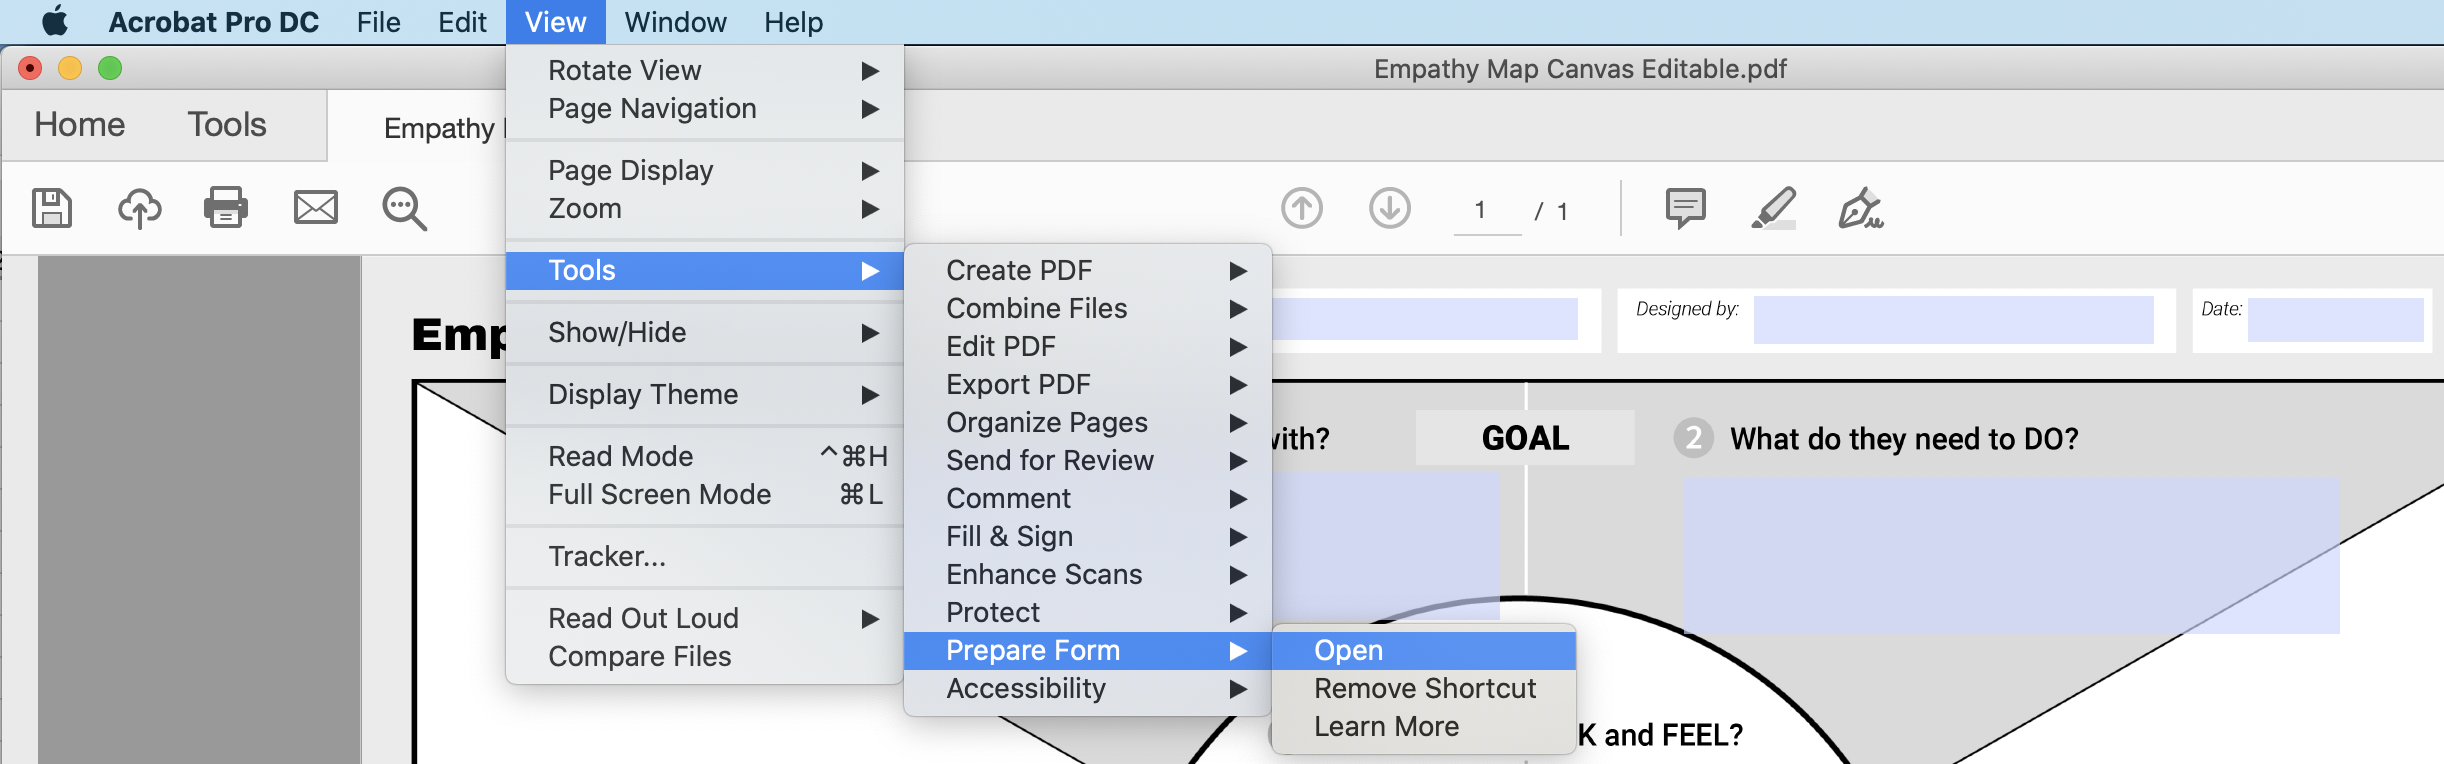 A pictorial representation of the Adobe Acrobat Pro View dropdown menu showing Tool > Prepare form > Open